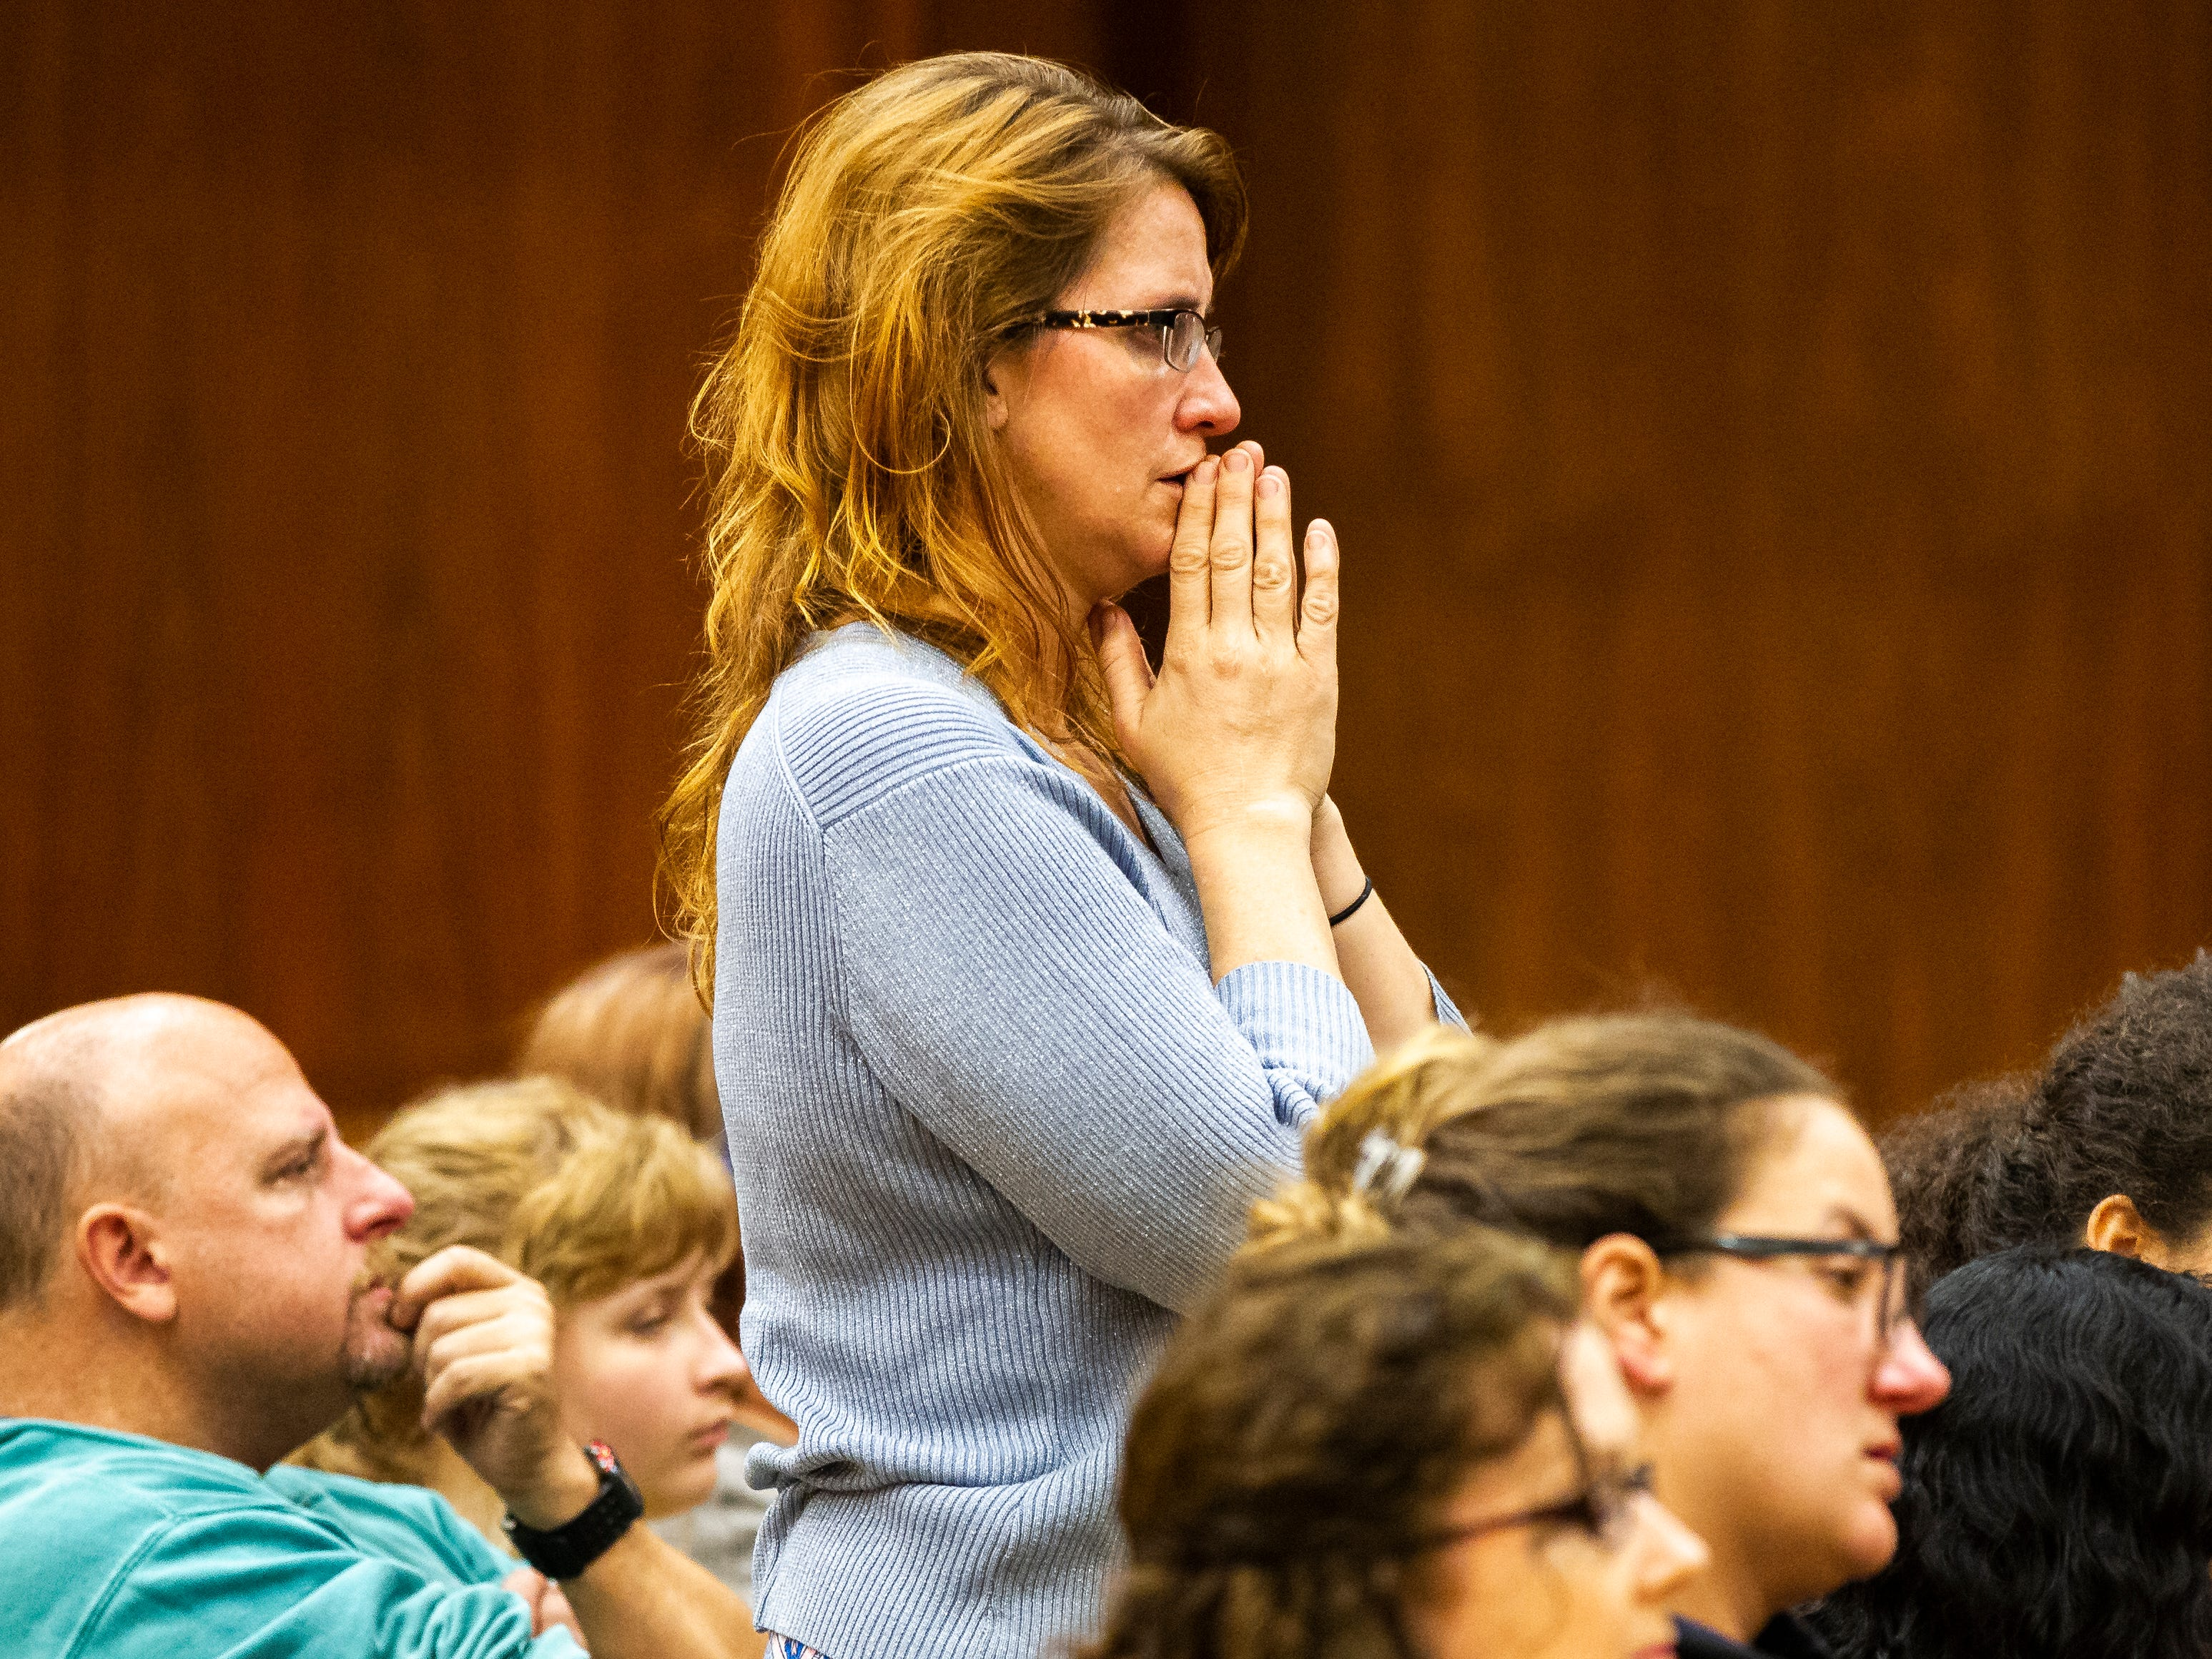 Rachael Hills, of Iowa City prays while community members gather during a vigil on Tuesday, Oct. 30, 2018, in the Iowa Memorial Union second floor ballroom on Tuesday night, Oct. 30, 2018. The vigil was in response to the Pittsburgh synagogue and Louisville shootings.